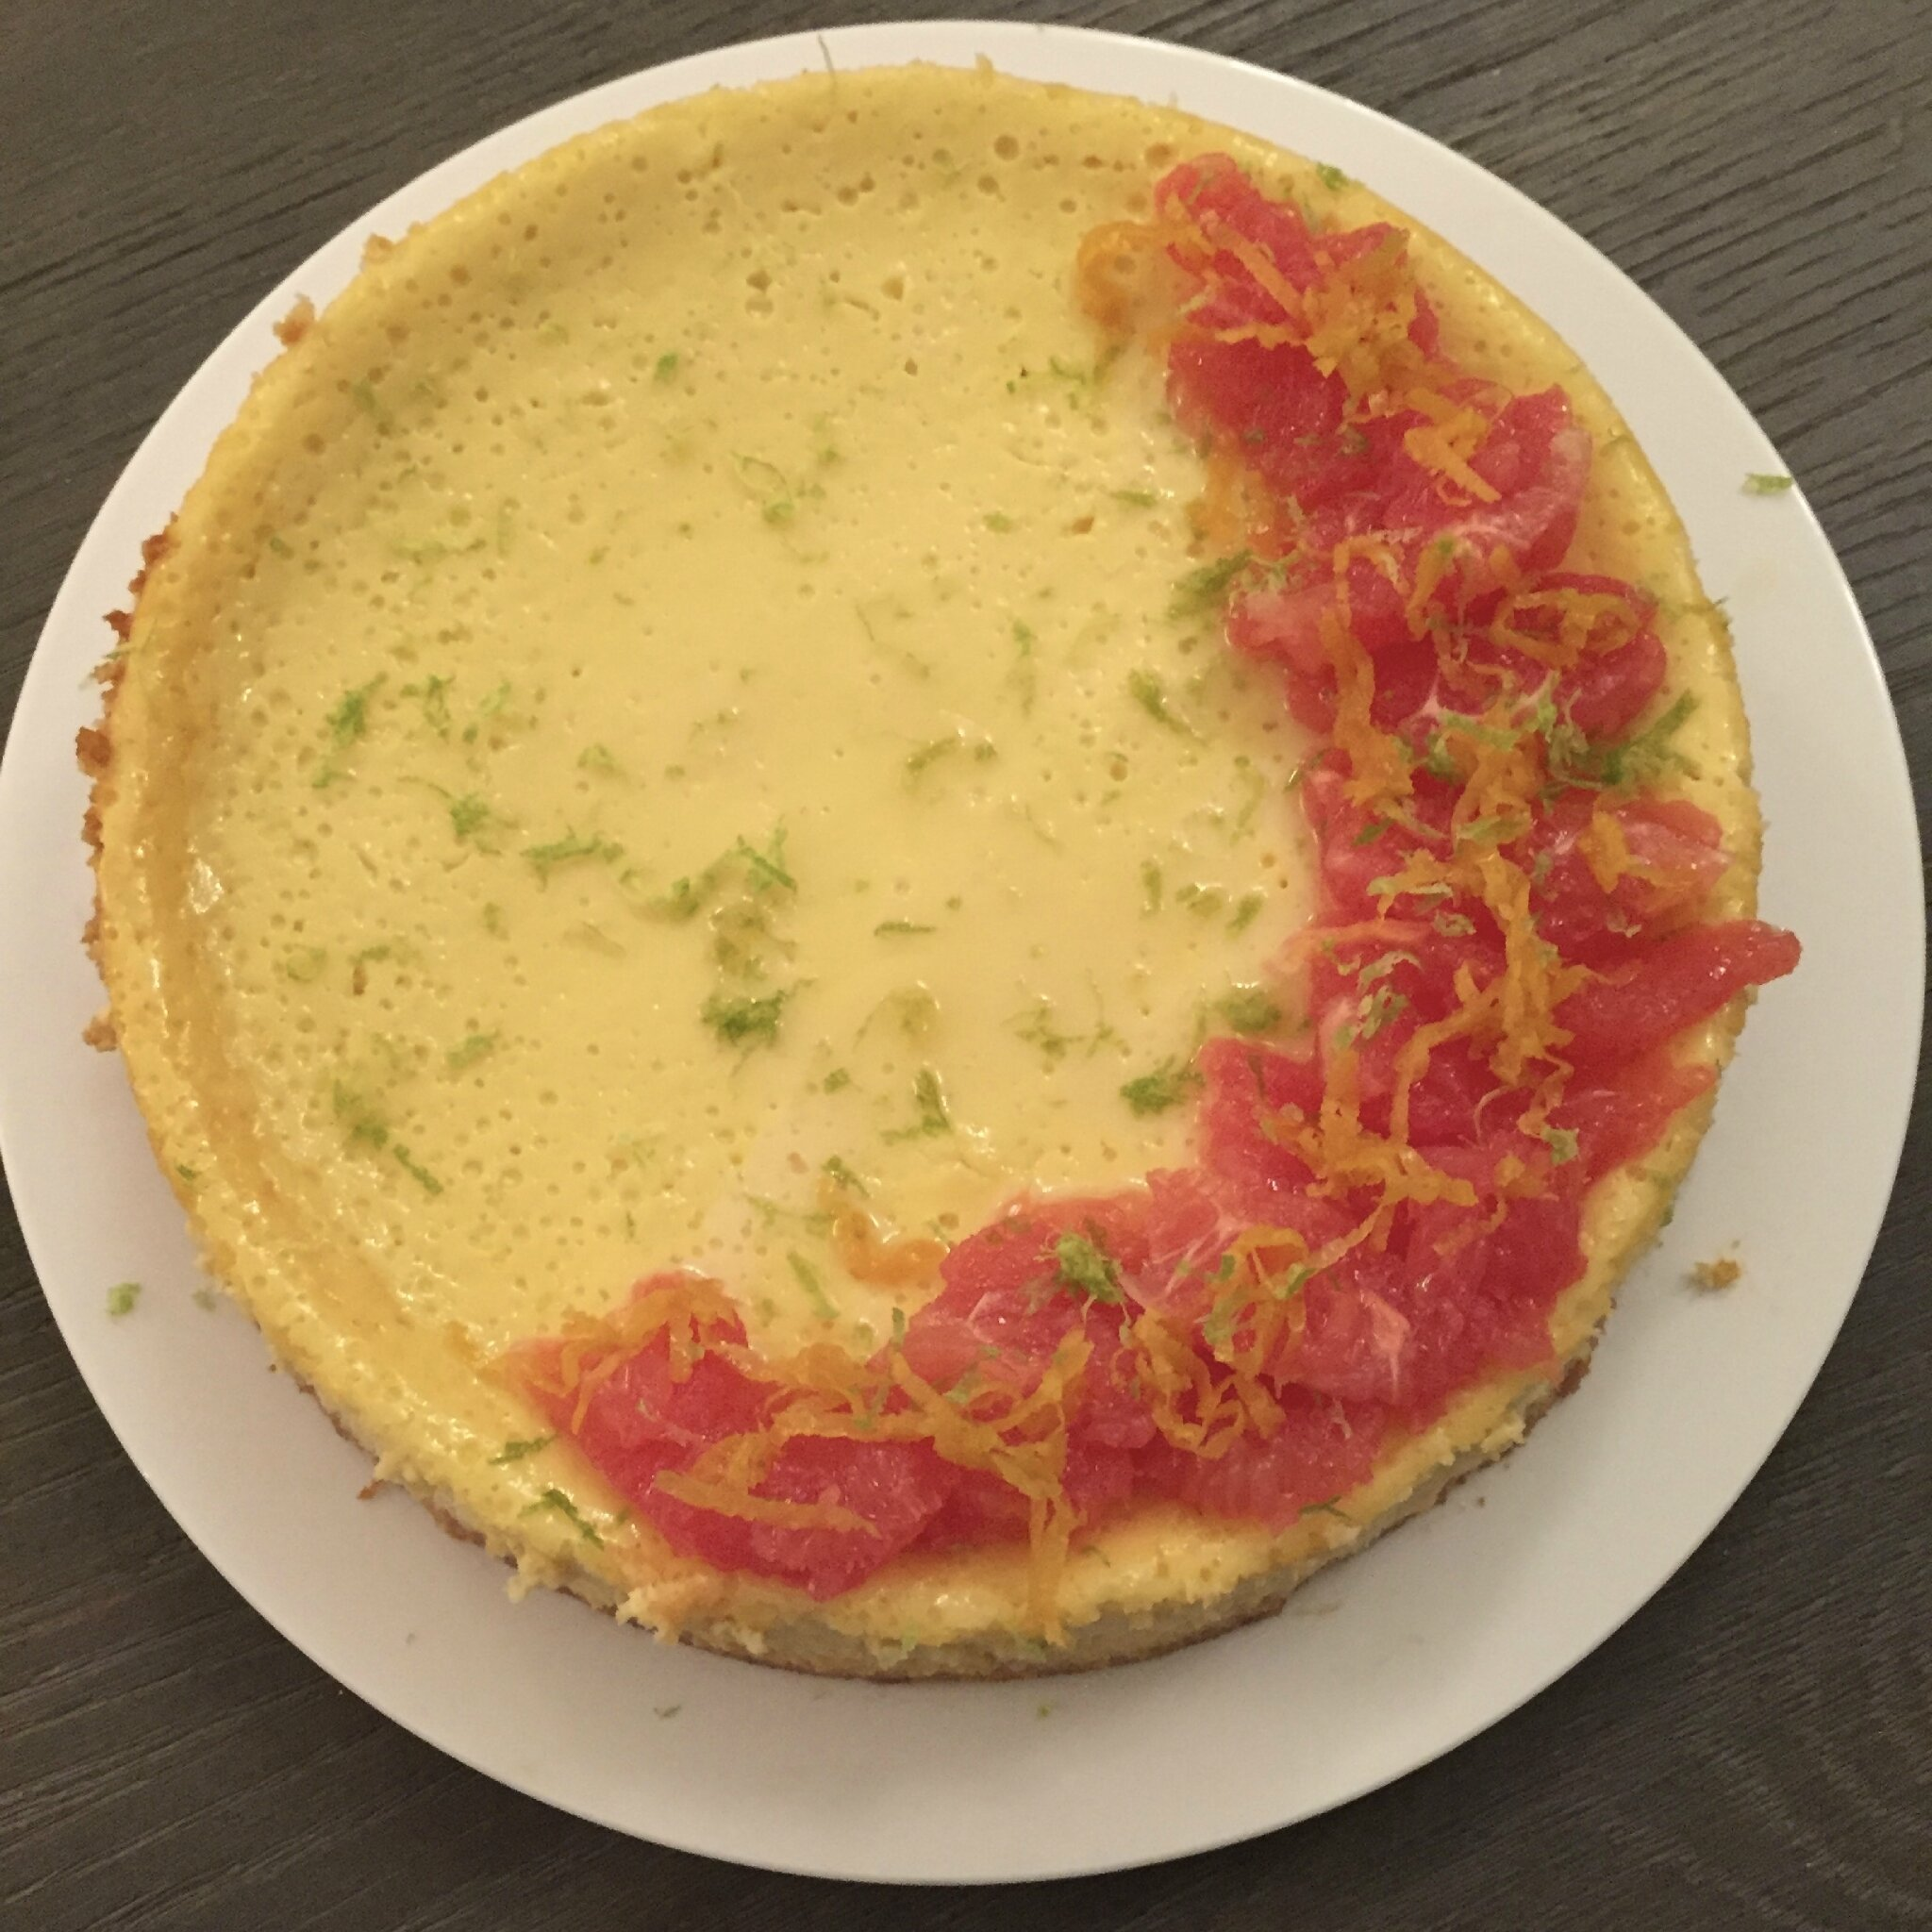 Cheesecake au pamplemousse